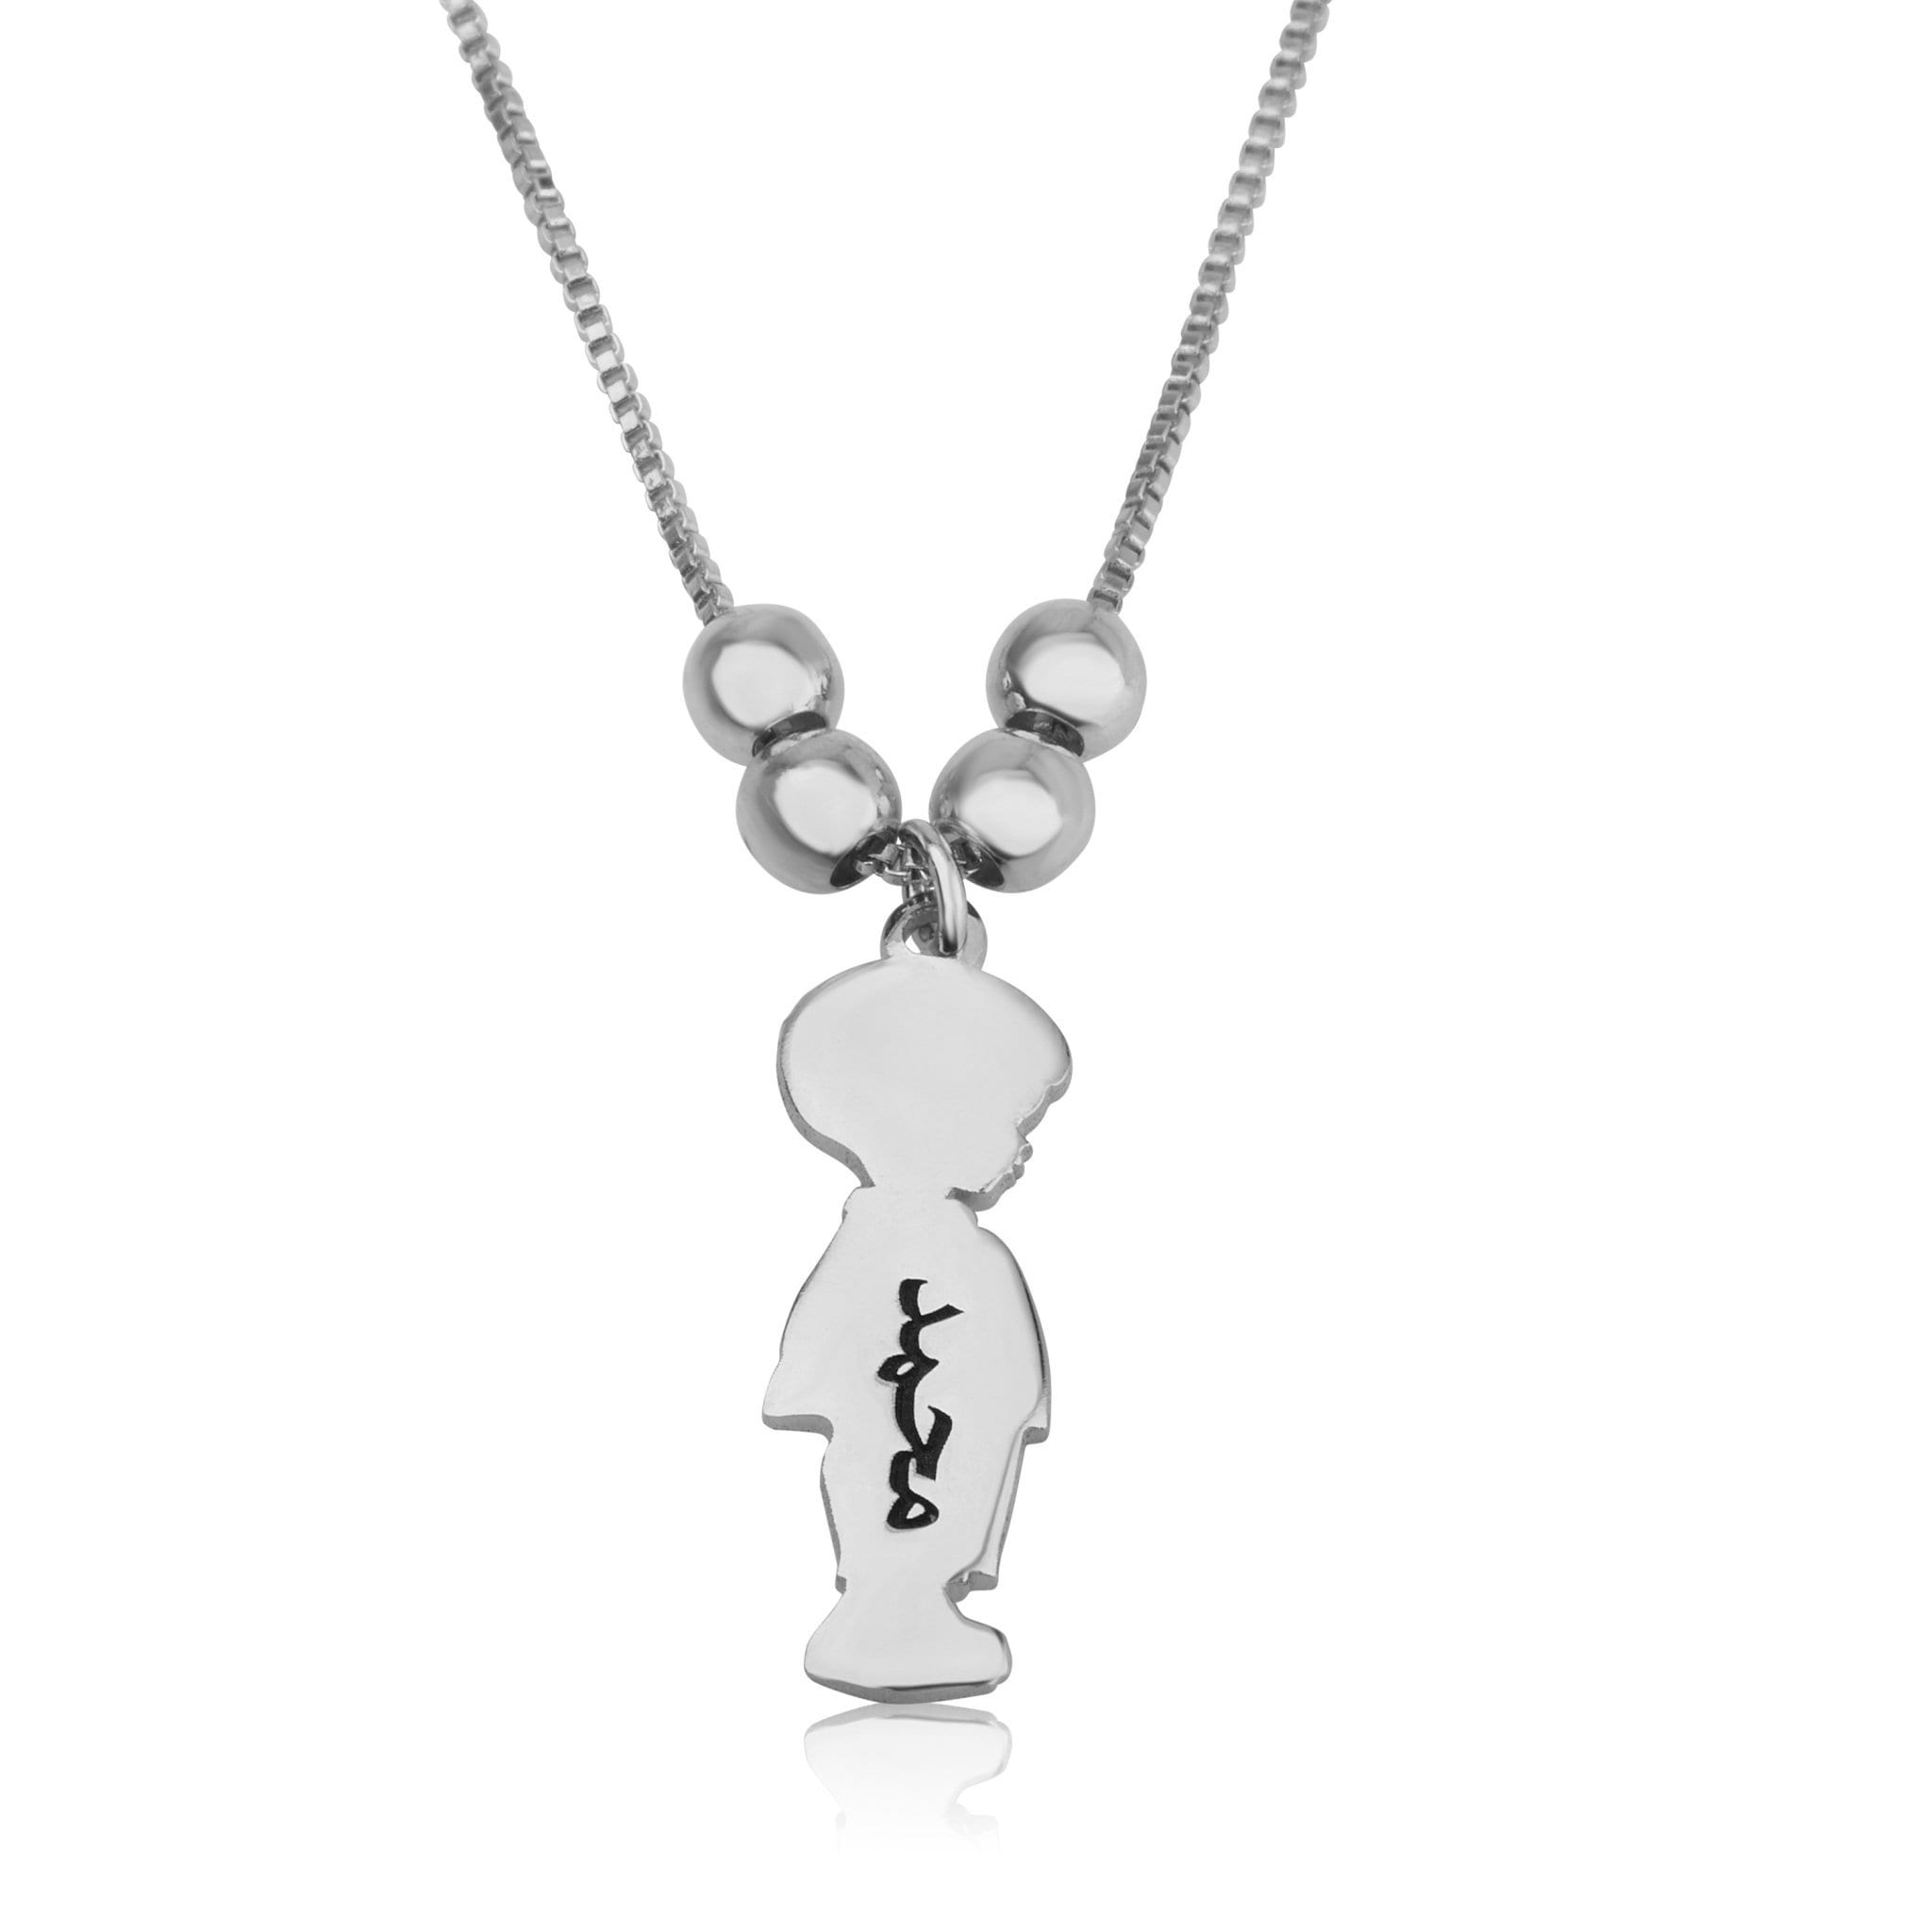 Children Charms Necklace with Arabic Name Engraved - Beleco Jewelry